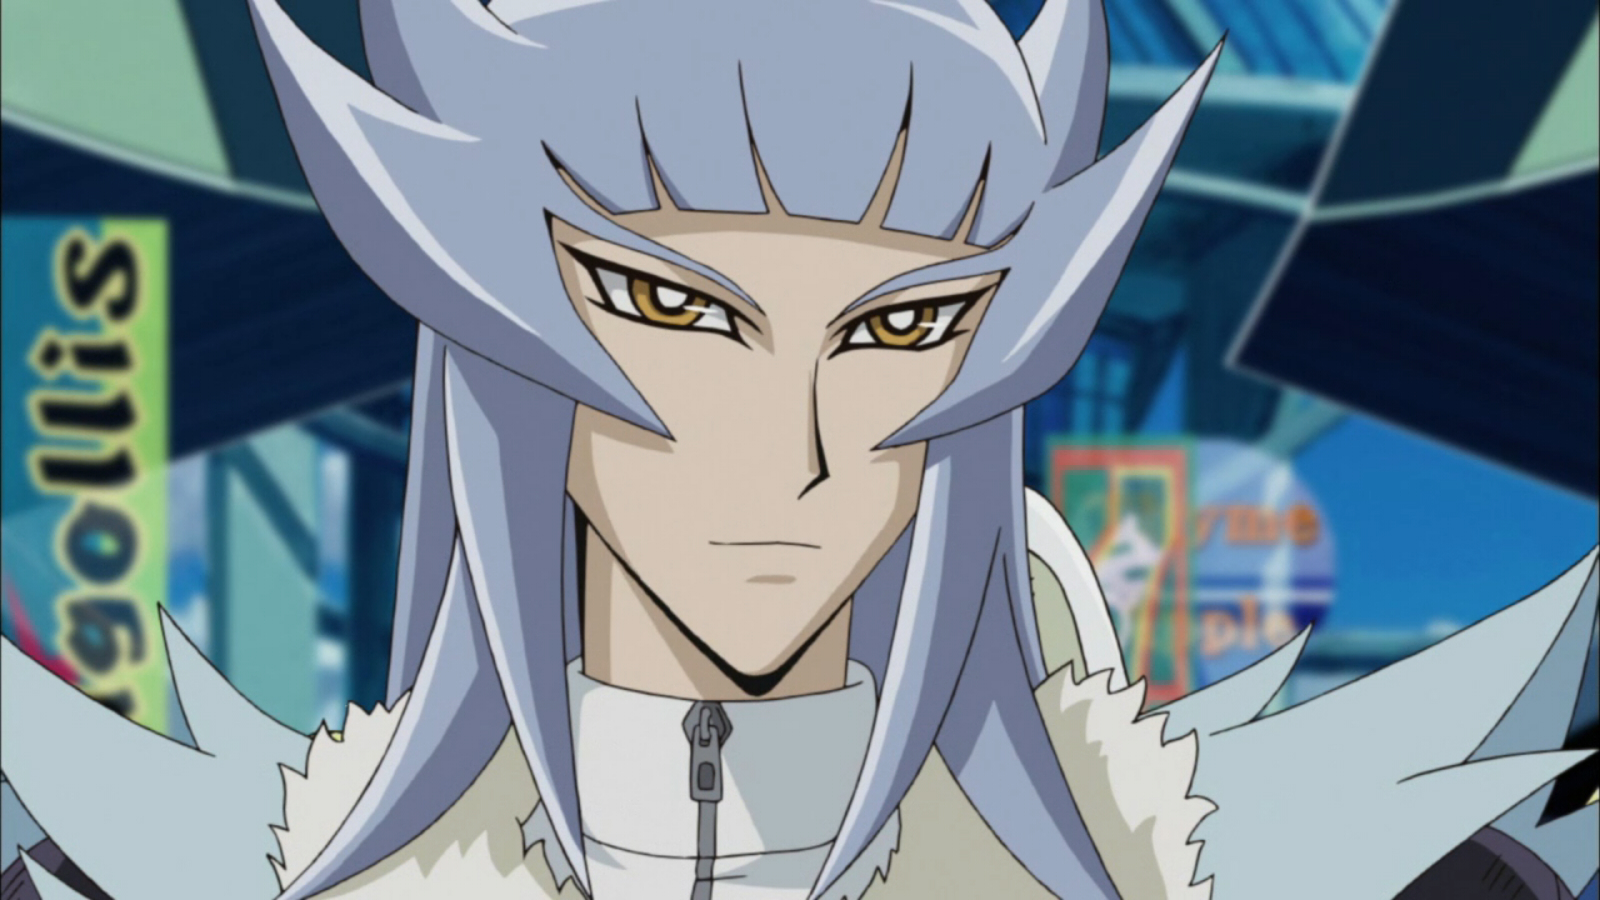 Halldor | Yu-Gi-Oh! | FANDOM powered by Wikia